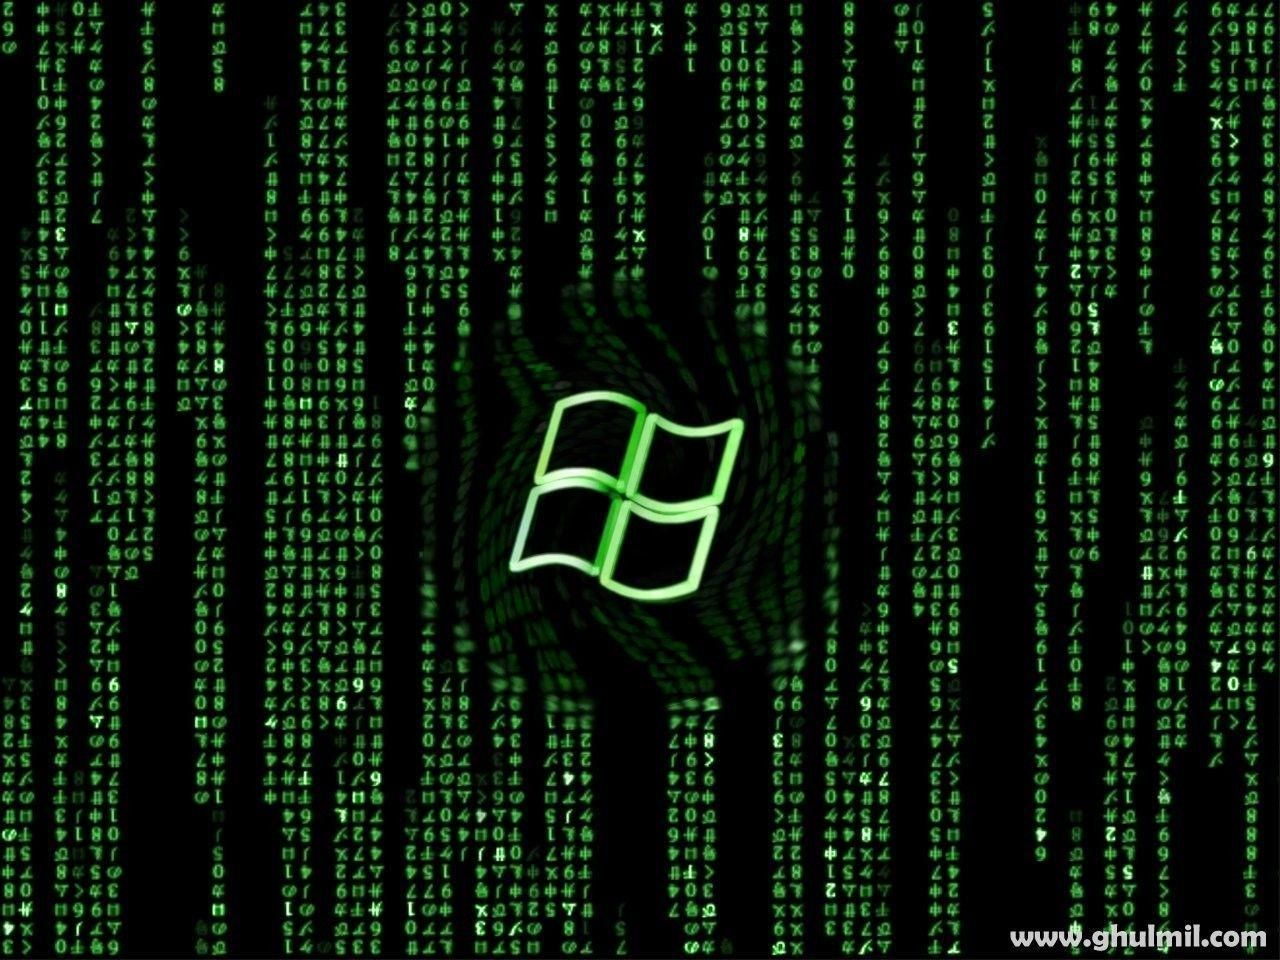 Computer Hacking Wallpapers Wallpapers 2020 Windows Xp Matrix Windows